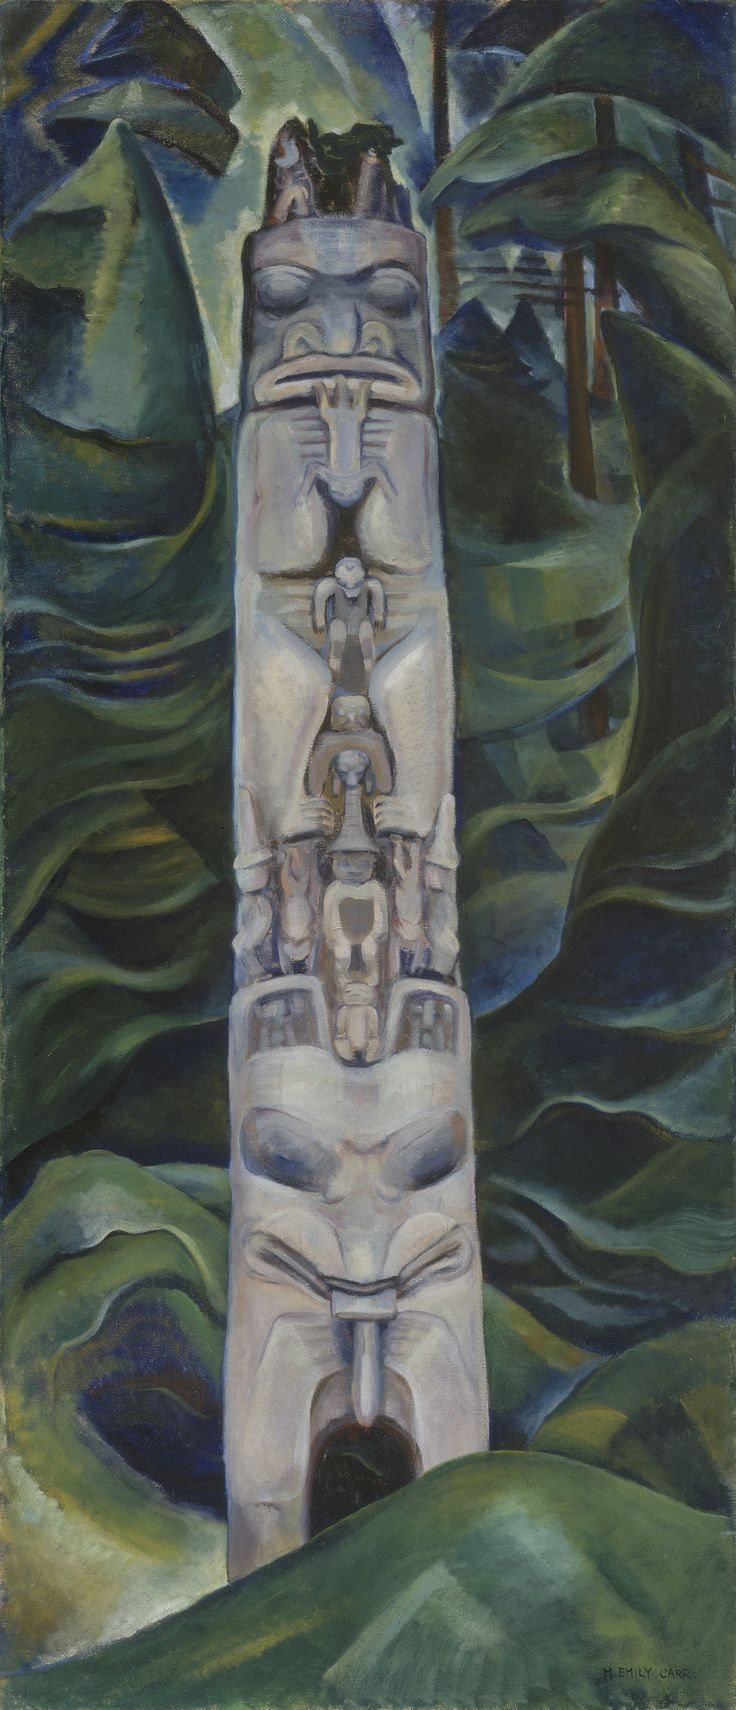 Emily Carr, Totem and Forest, 1931, oil on canvas, Collection of the Vancouver Art Gallery, Emily Carr Trust. Photo: Trevor Mills, Vancouver Art Gallery.